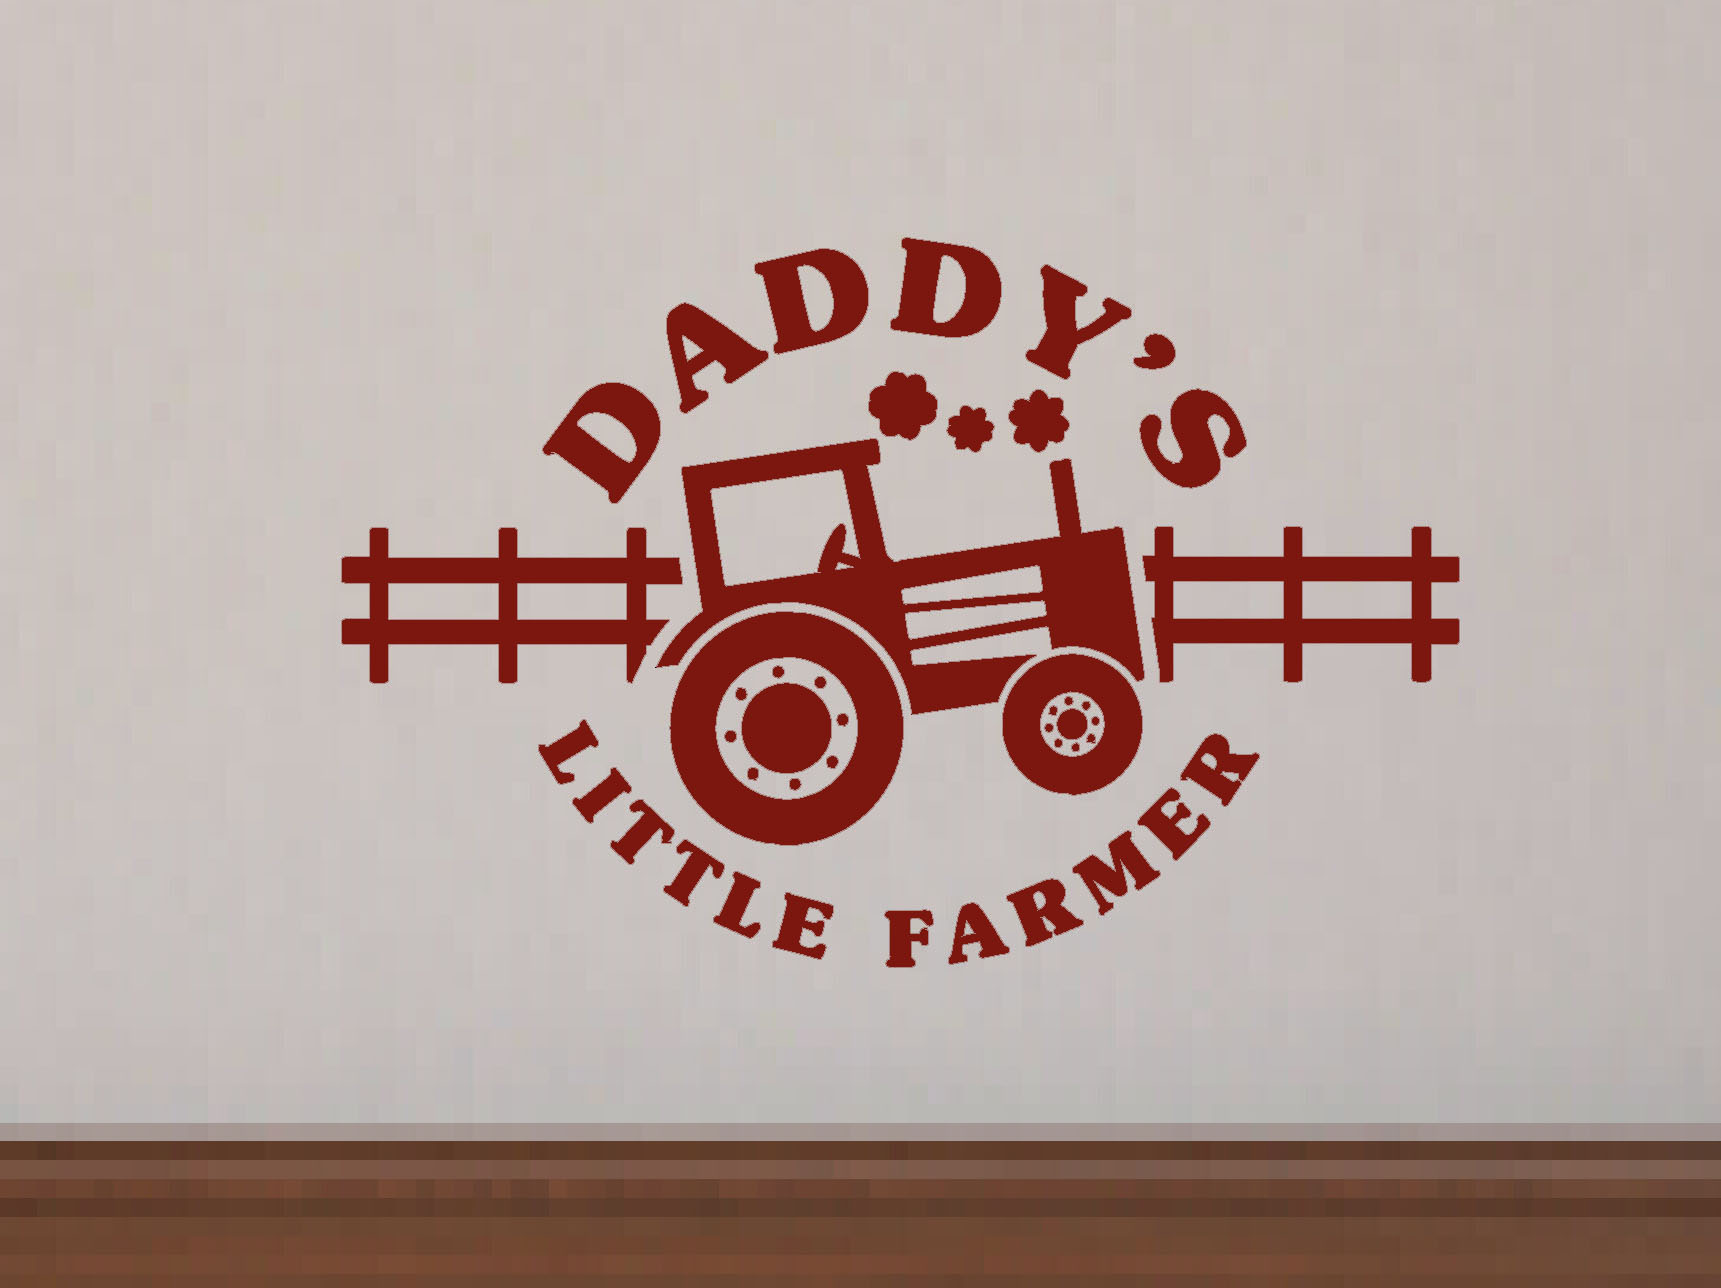 Farm and western wall art for your nursery wall decor plus more daddys little farmer farm cowboy wall decal stickers amipublicfo Images